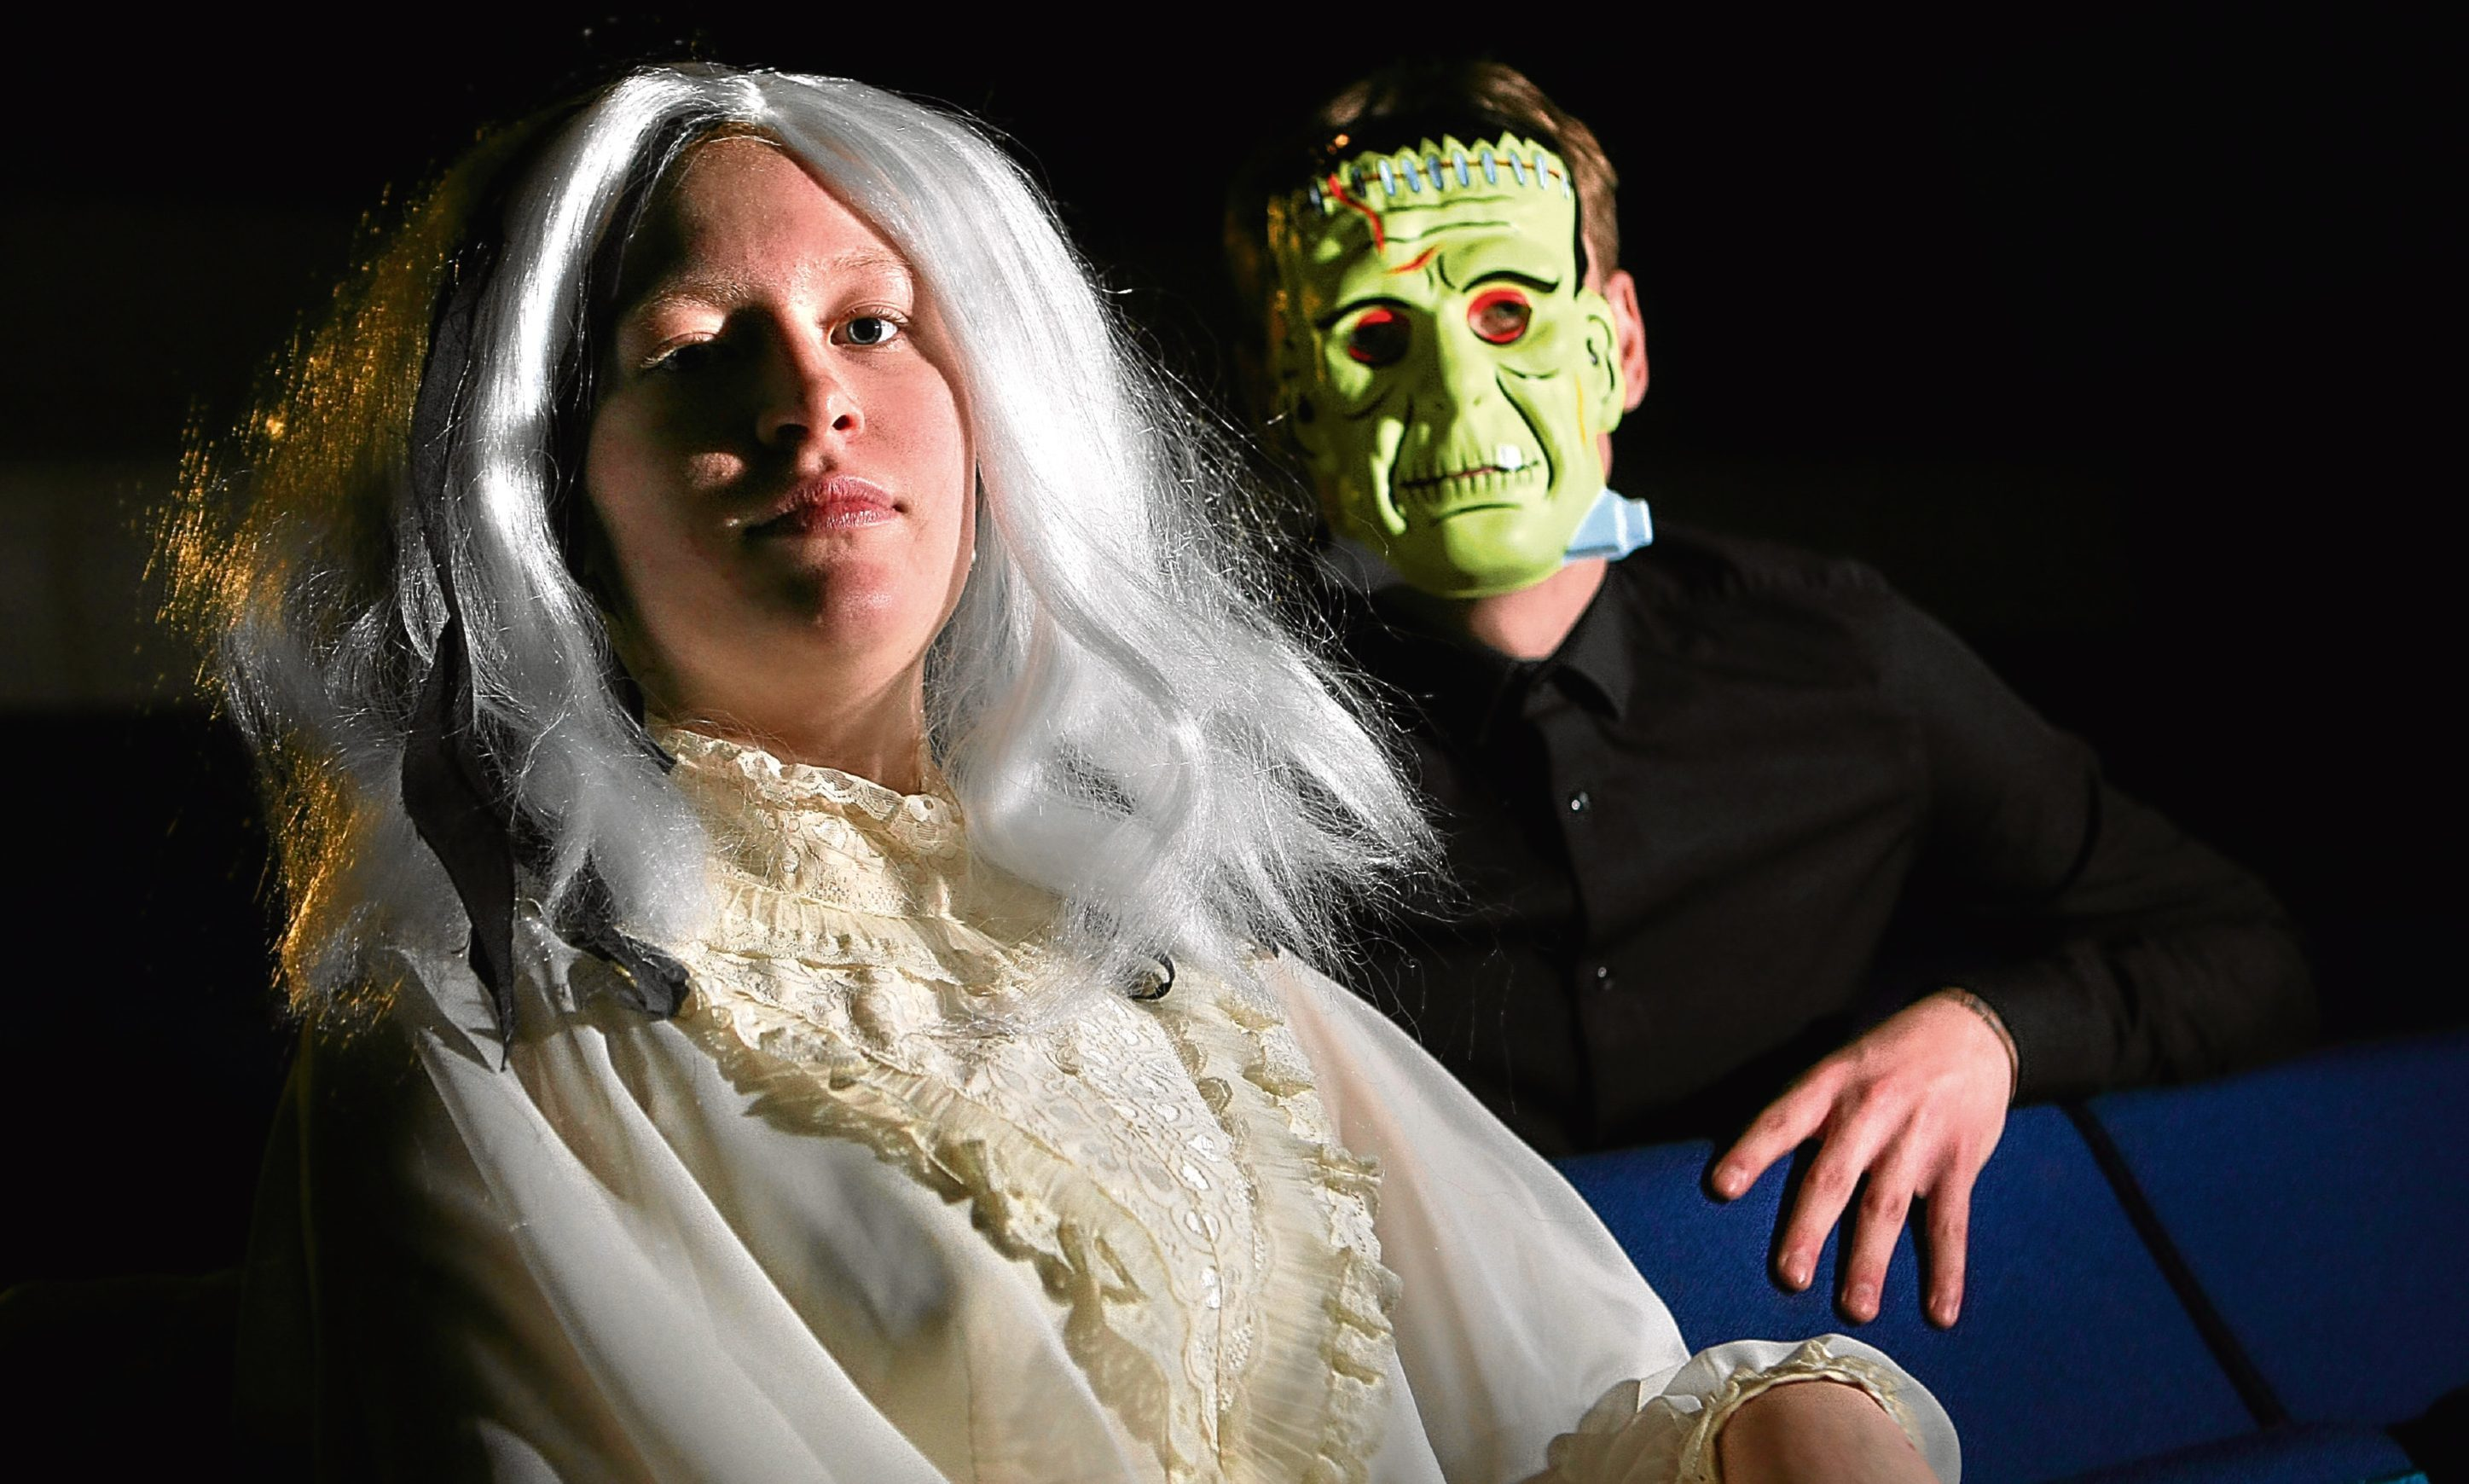 Andrew Manzi and Amelia Newton as Frankenstein and the bride of Frankenstein.